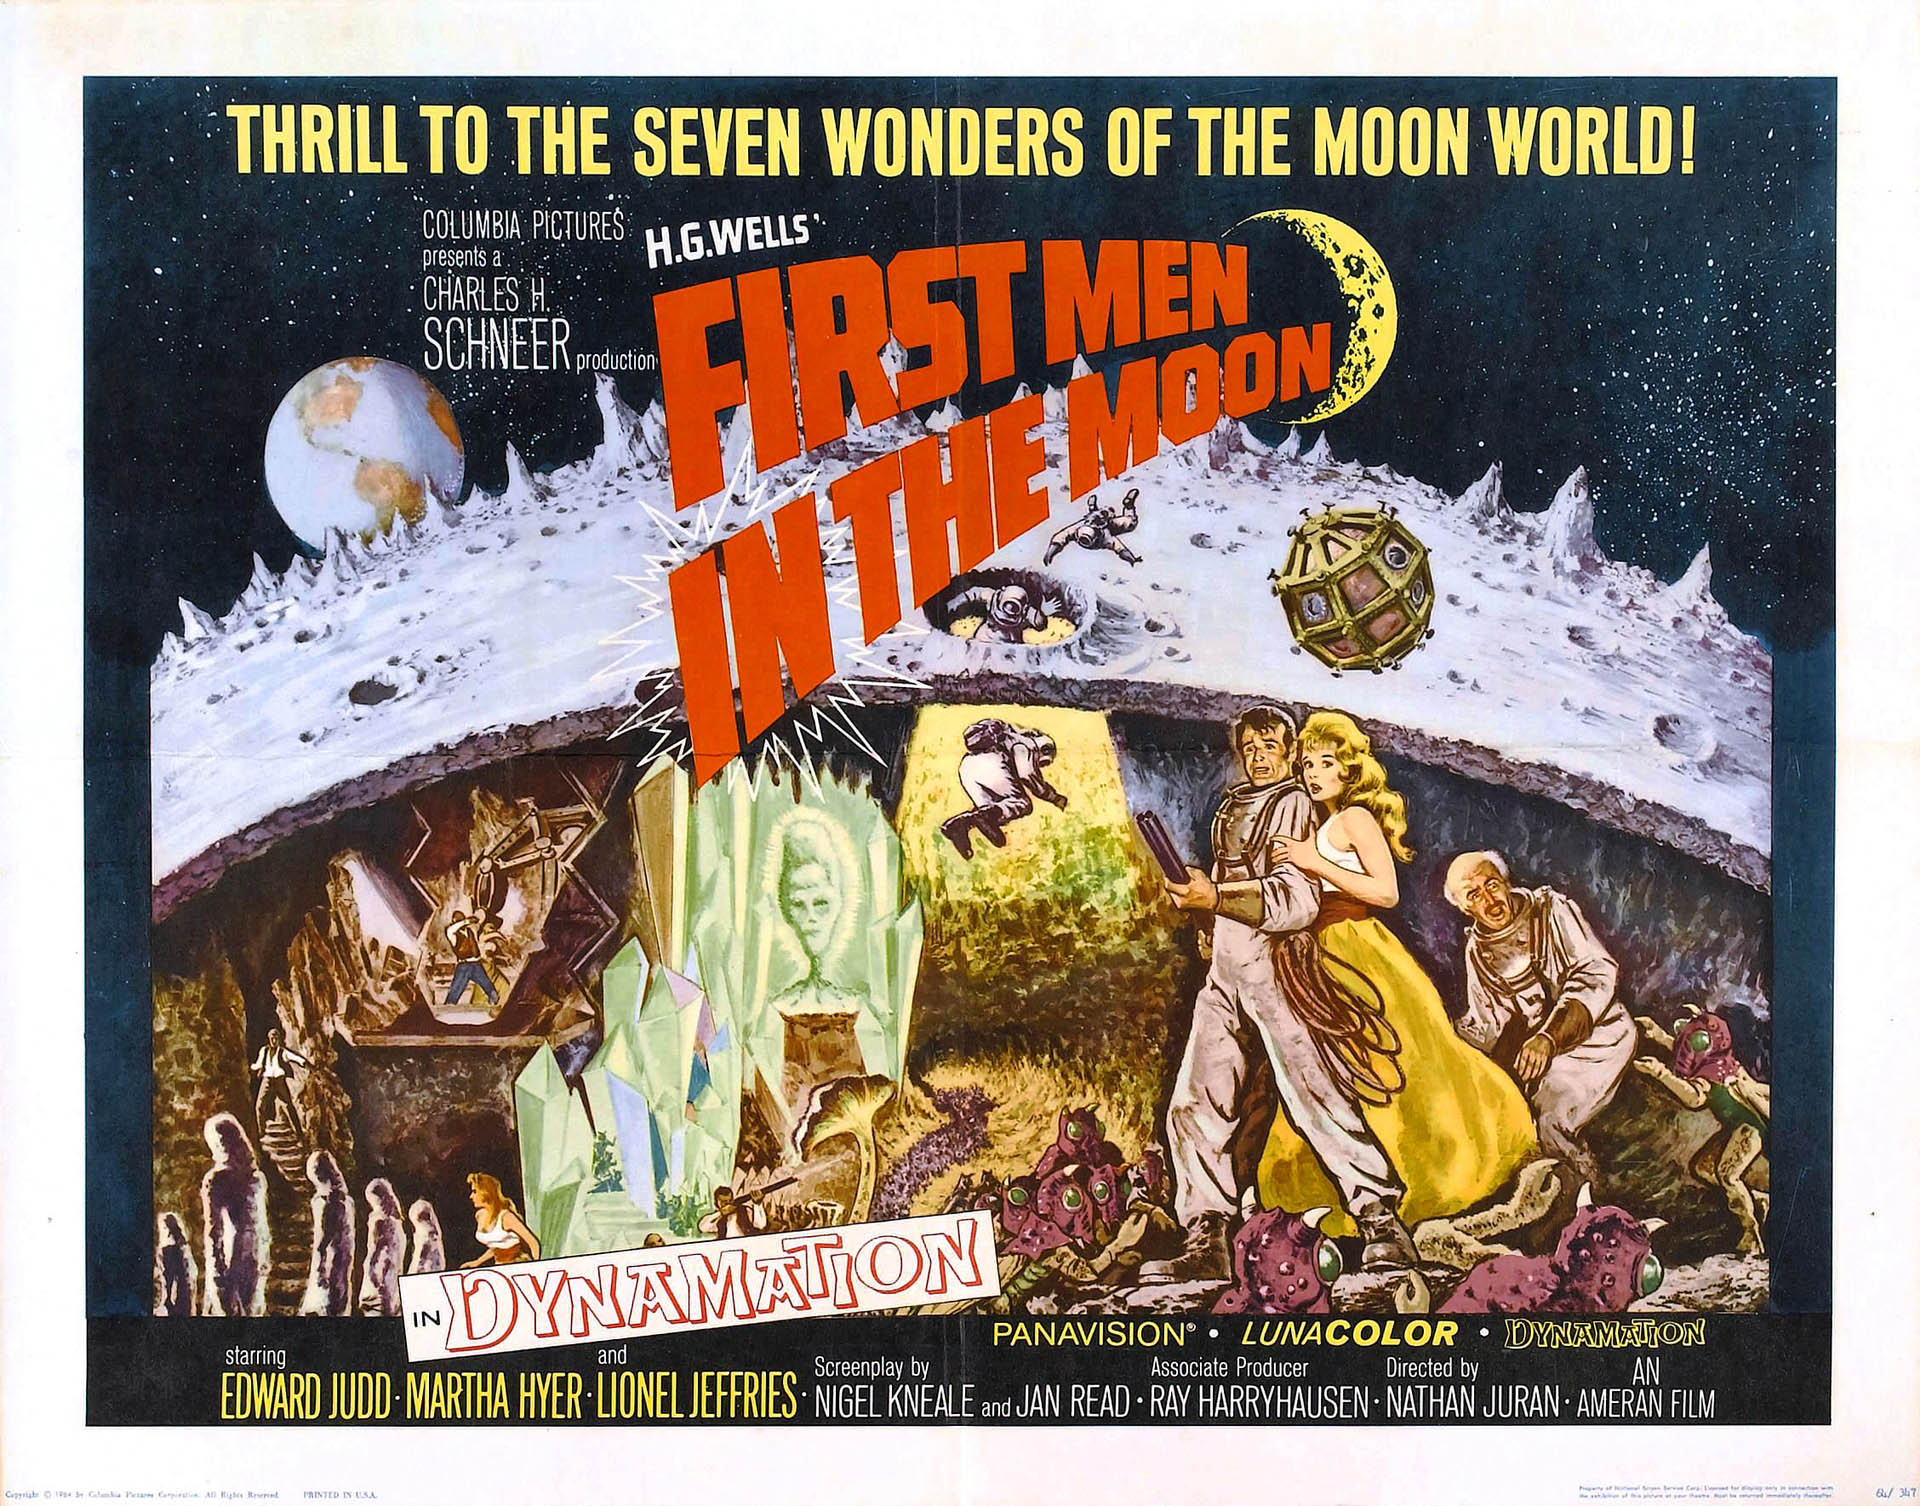 Lobby card for the 1964 film adaptation of The First Men in the Moon